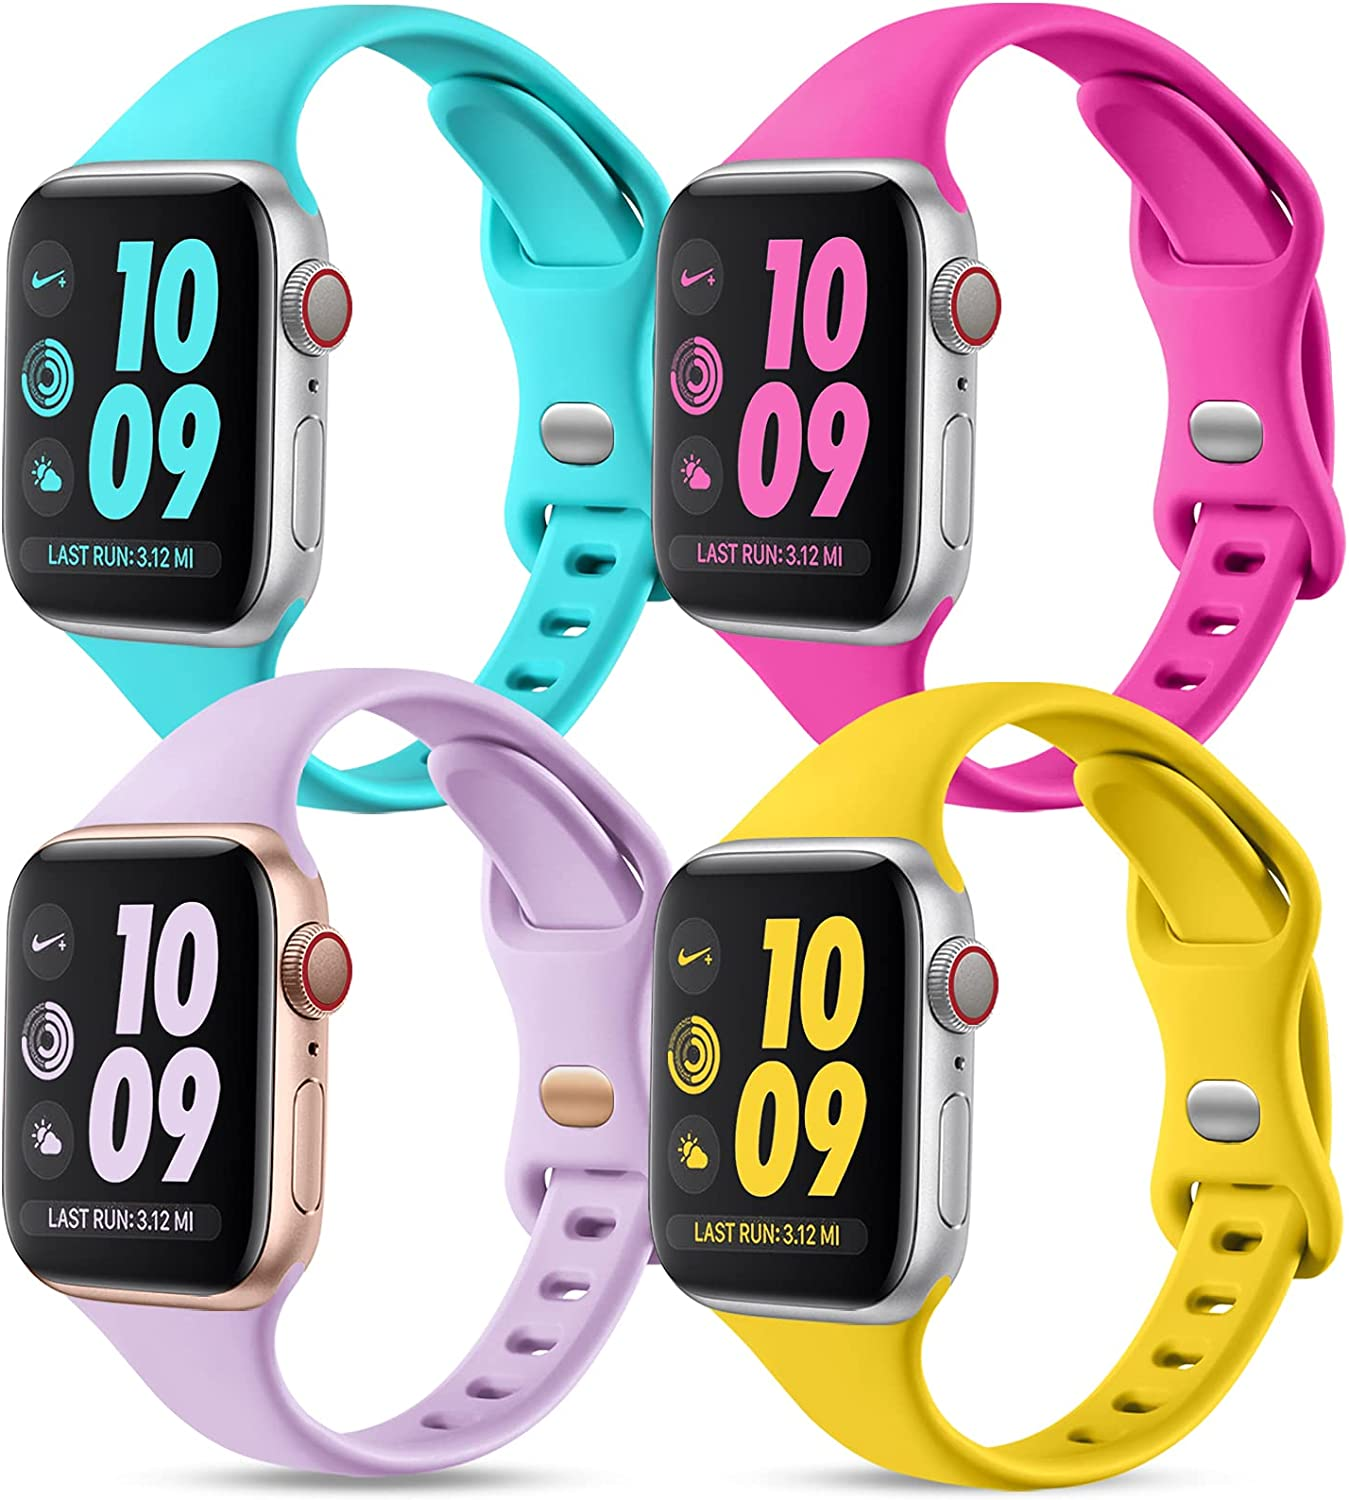 GEAK Compatible with Apple Watch Bands Series 6 38mm 40mm for Women, Slim Silicone Sport Wristband for iWatch SE 38mm Bands Series 1 2 3 4 5 6, 4Pack Lavender/Rose/Teal/Mango Yellow